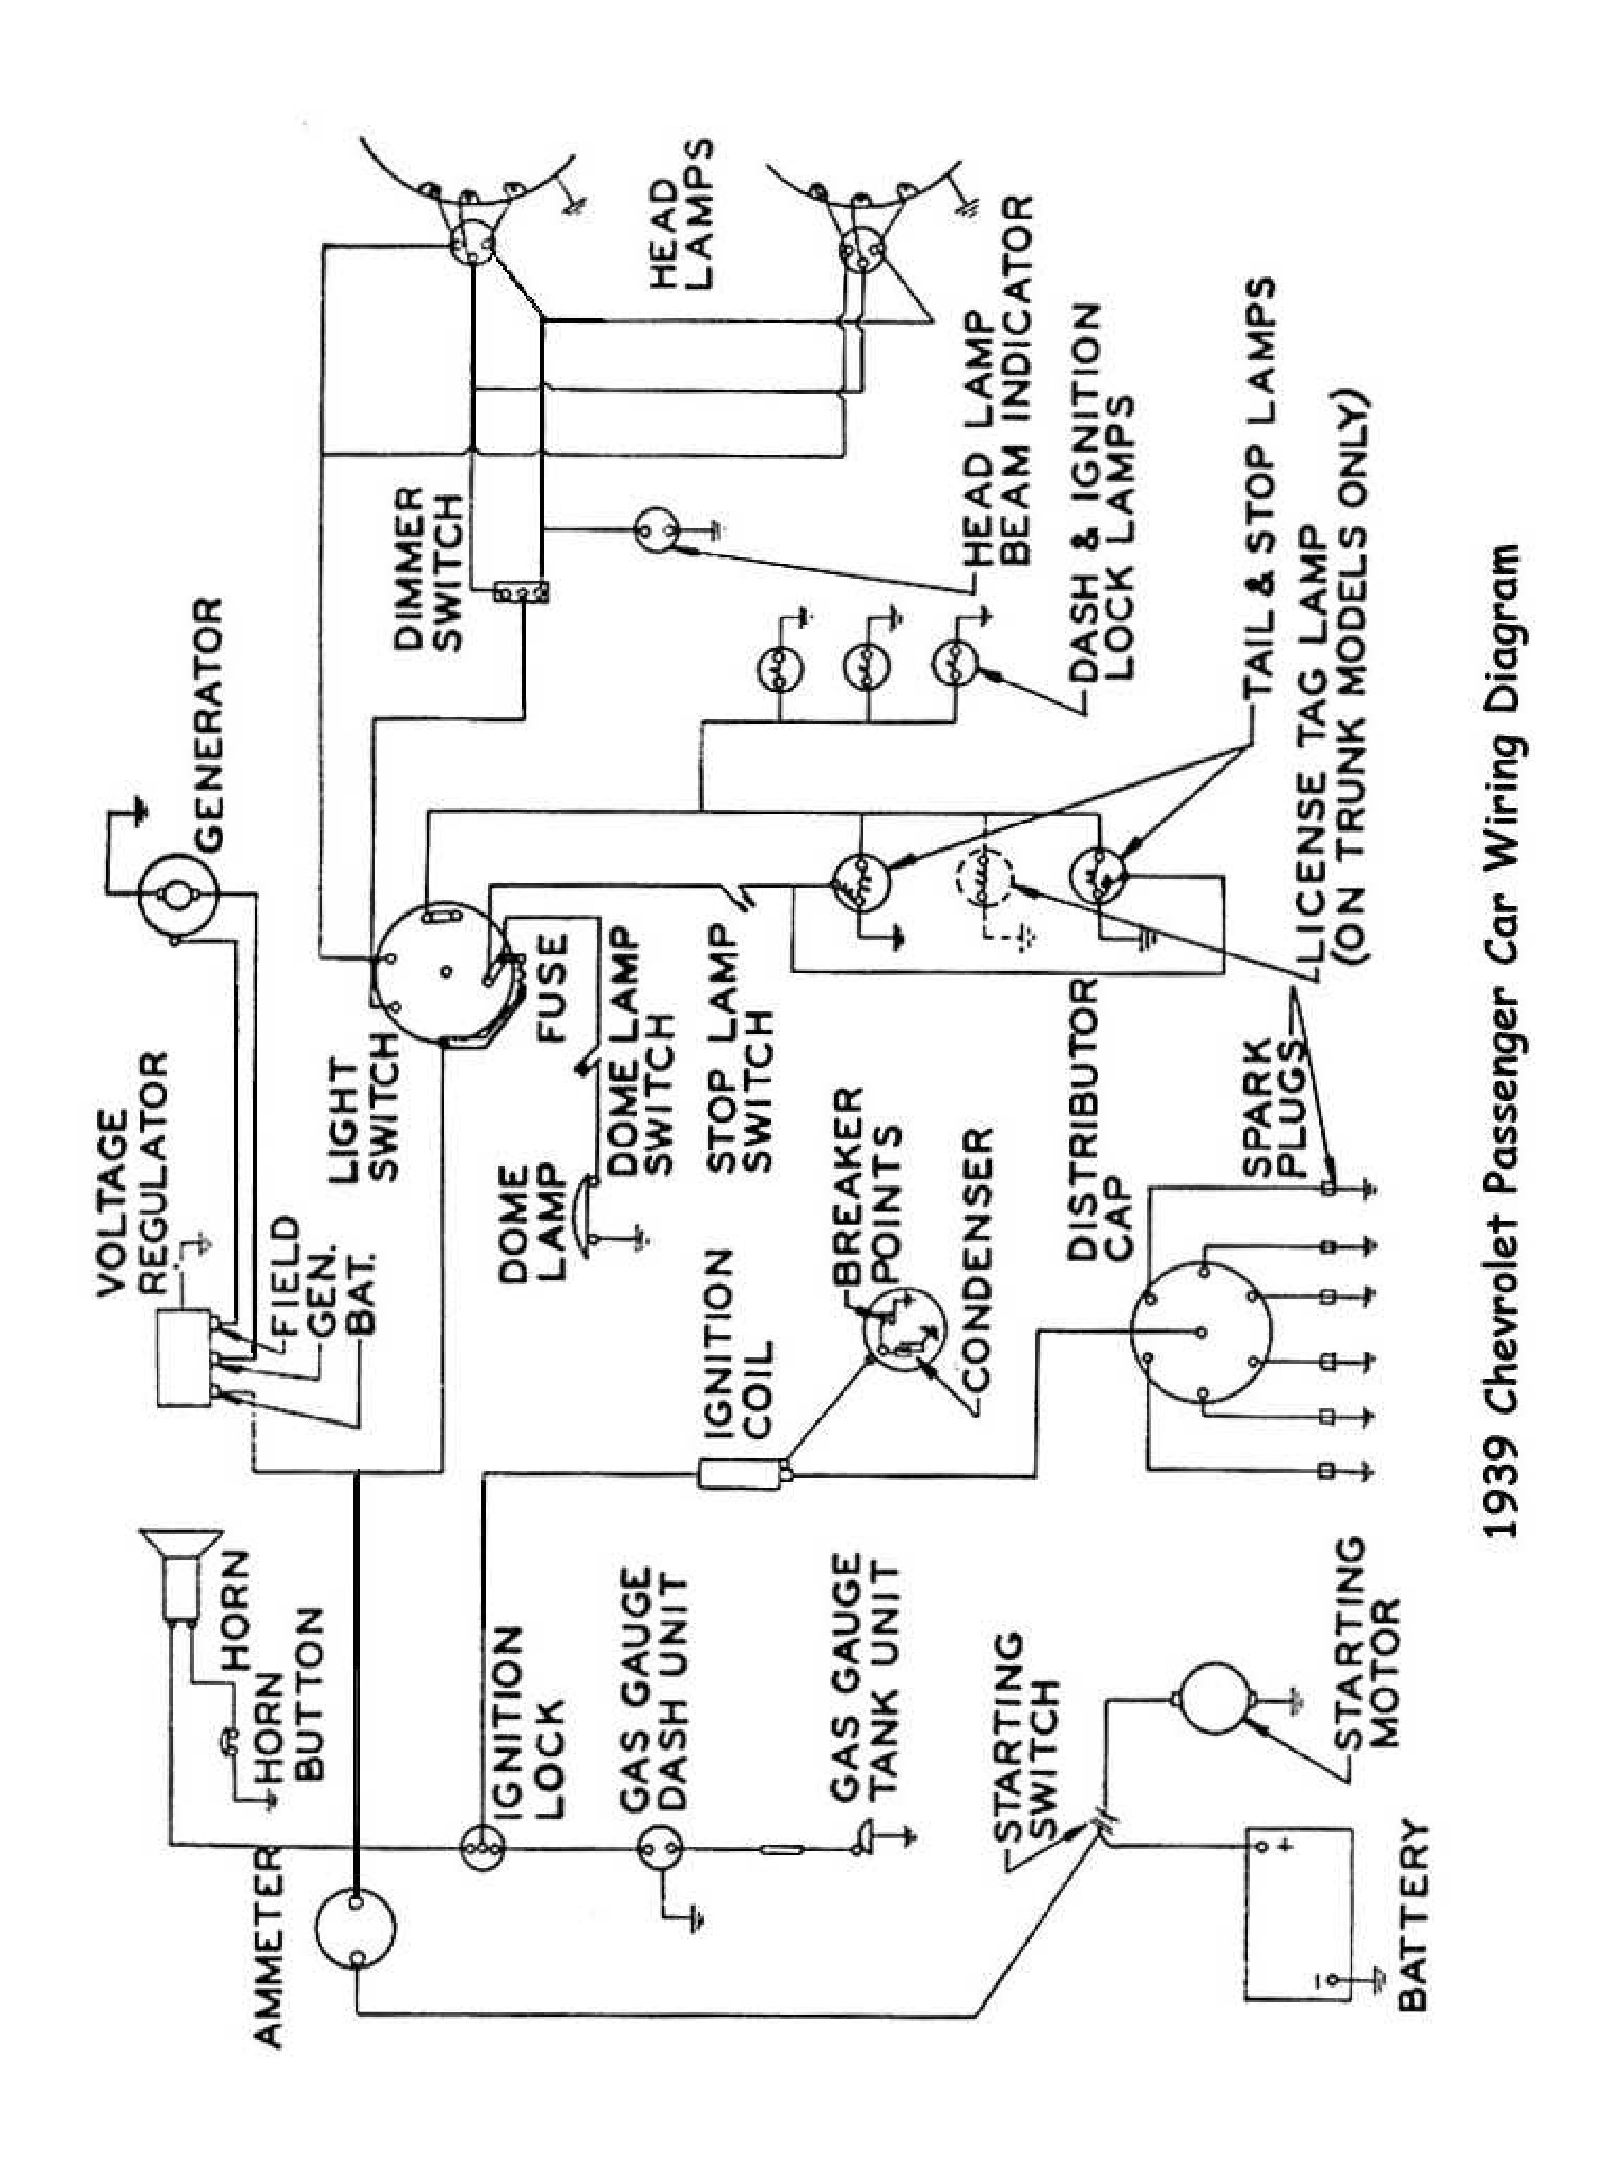 chevy wiring diagrams 1953 Chevy 4 Door 1939 passenger car wiring